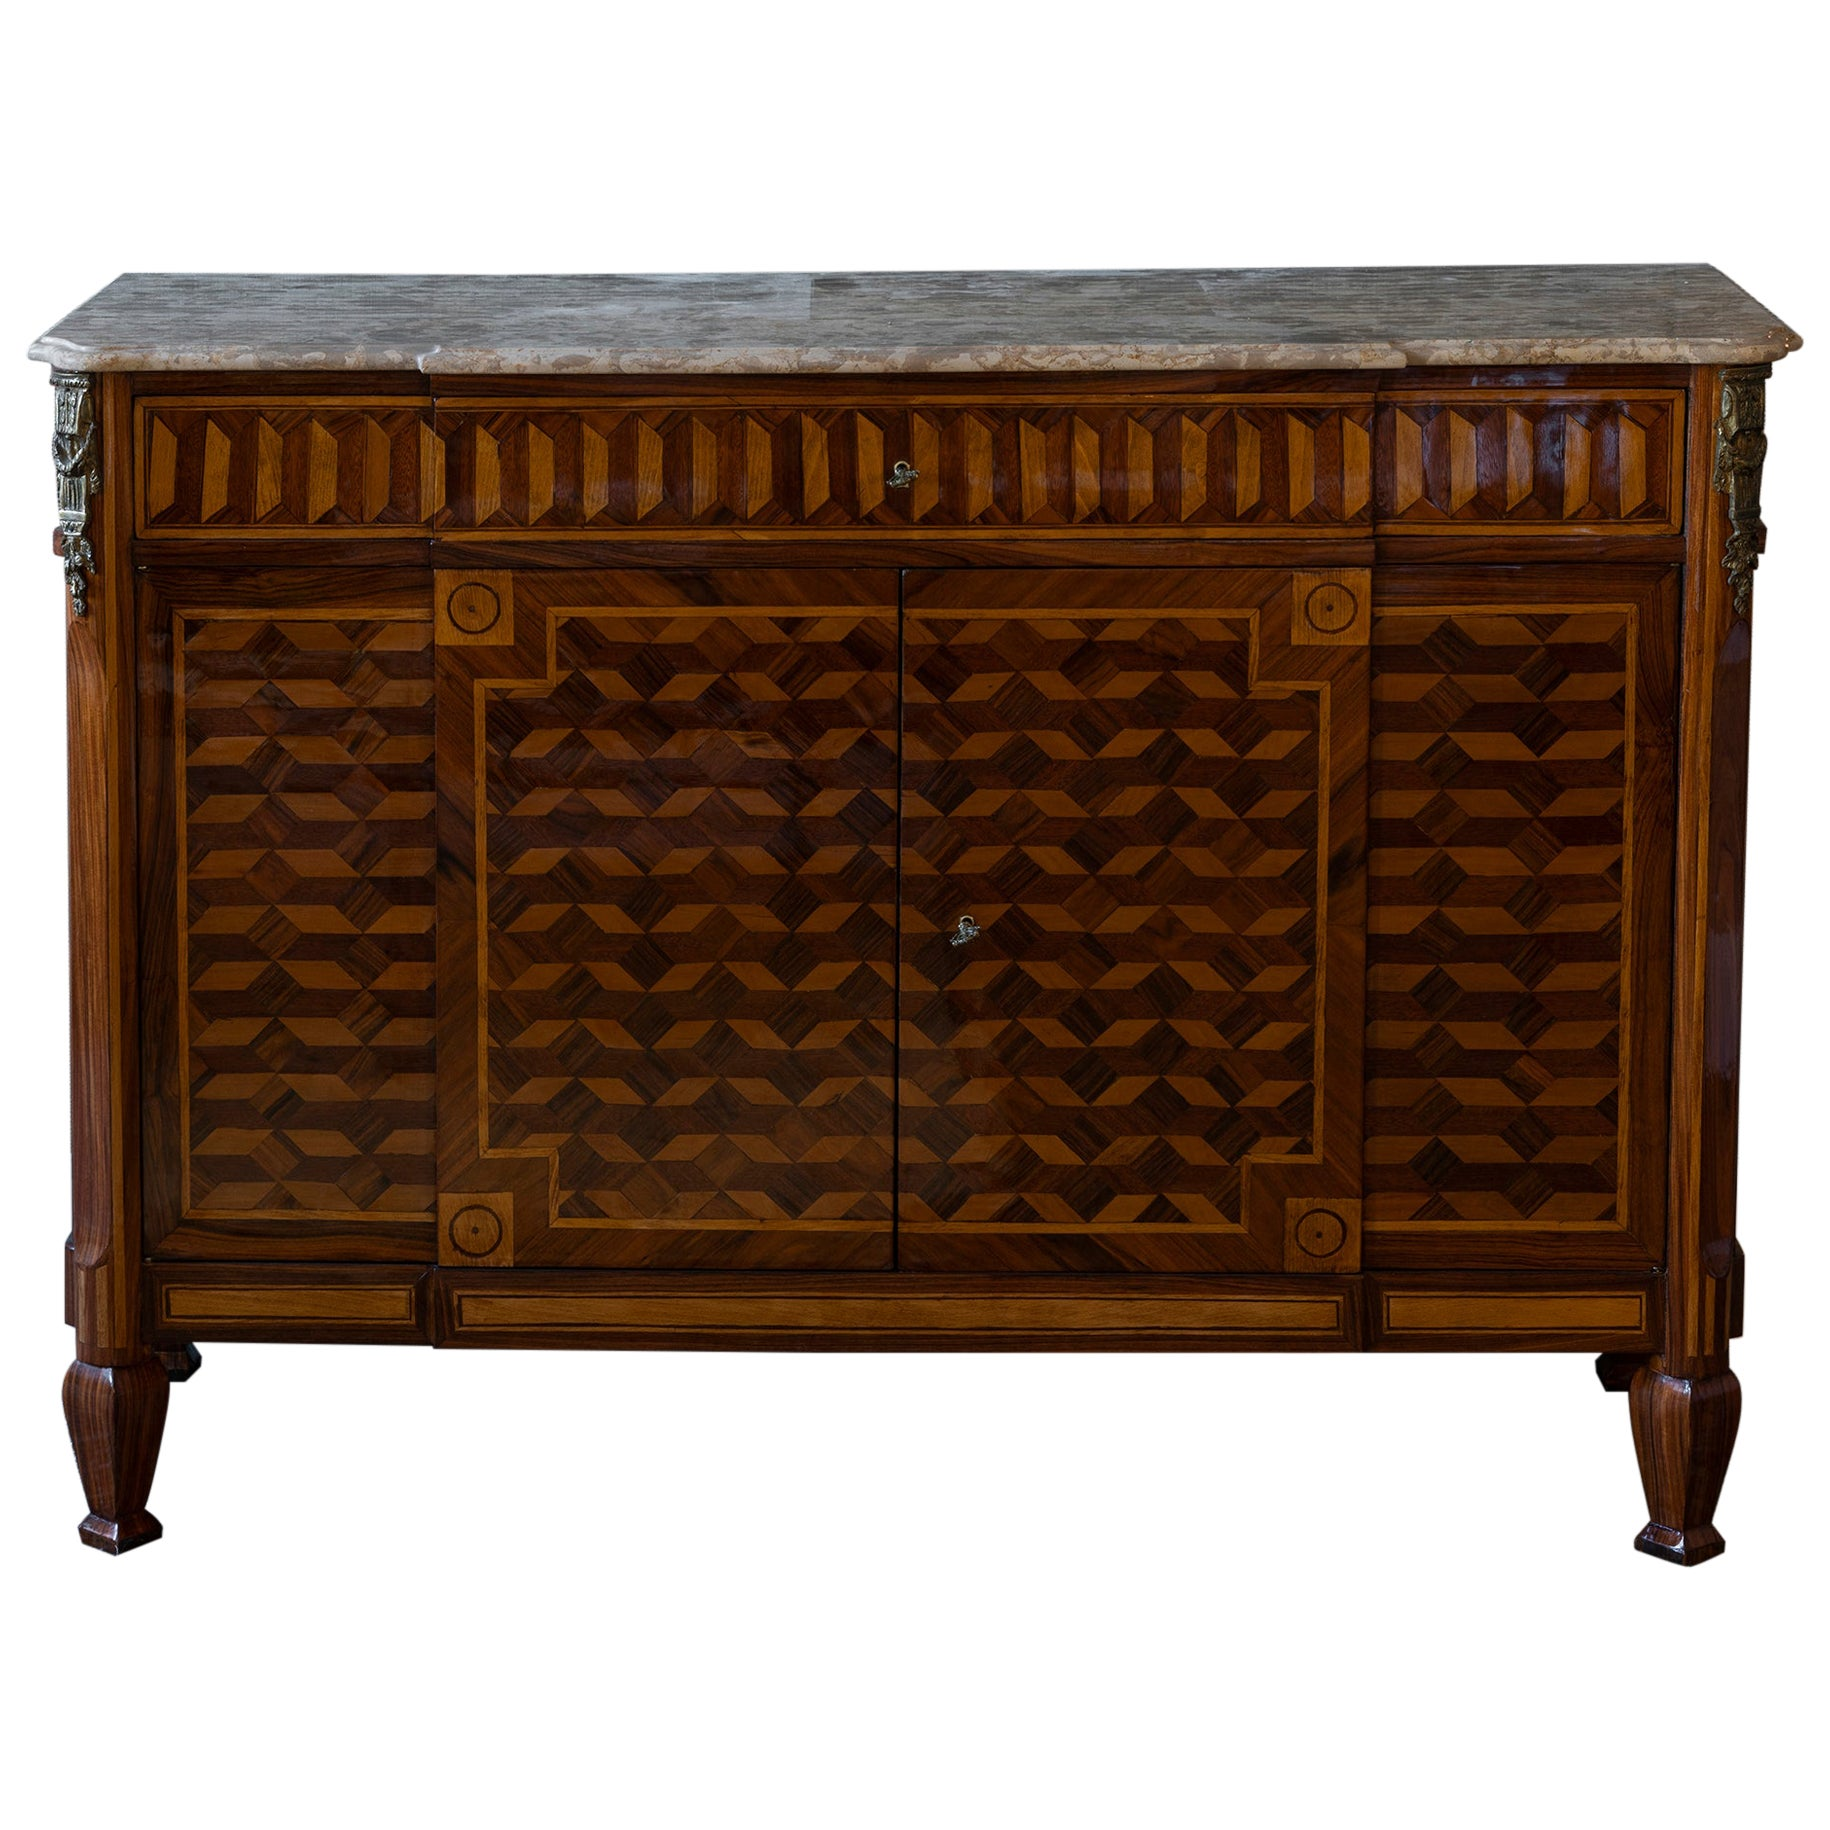 Late 19th Century Louis XV Style Marquetry French Credenza Marble Top, France